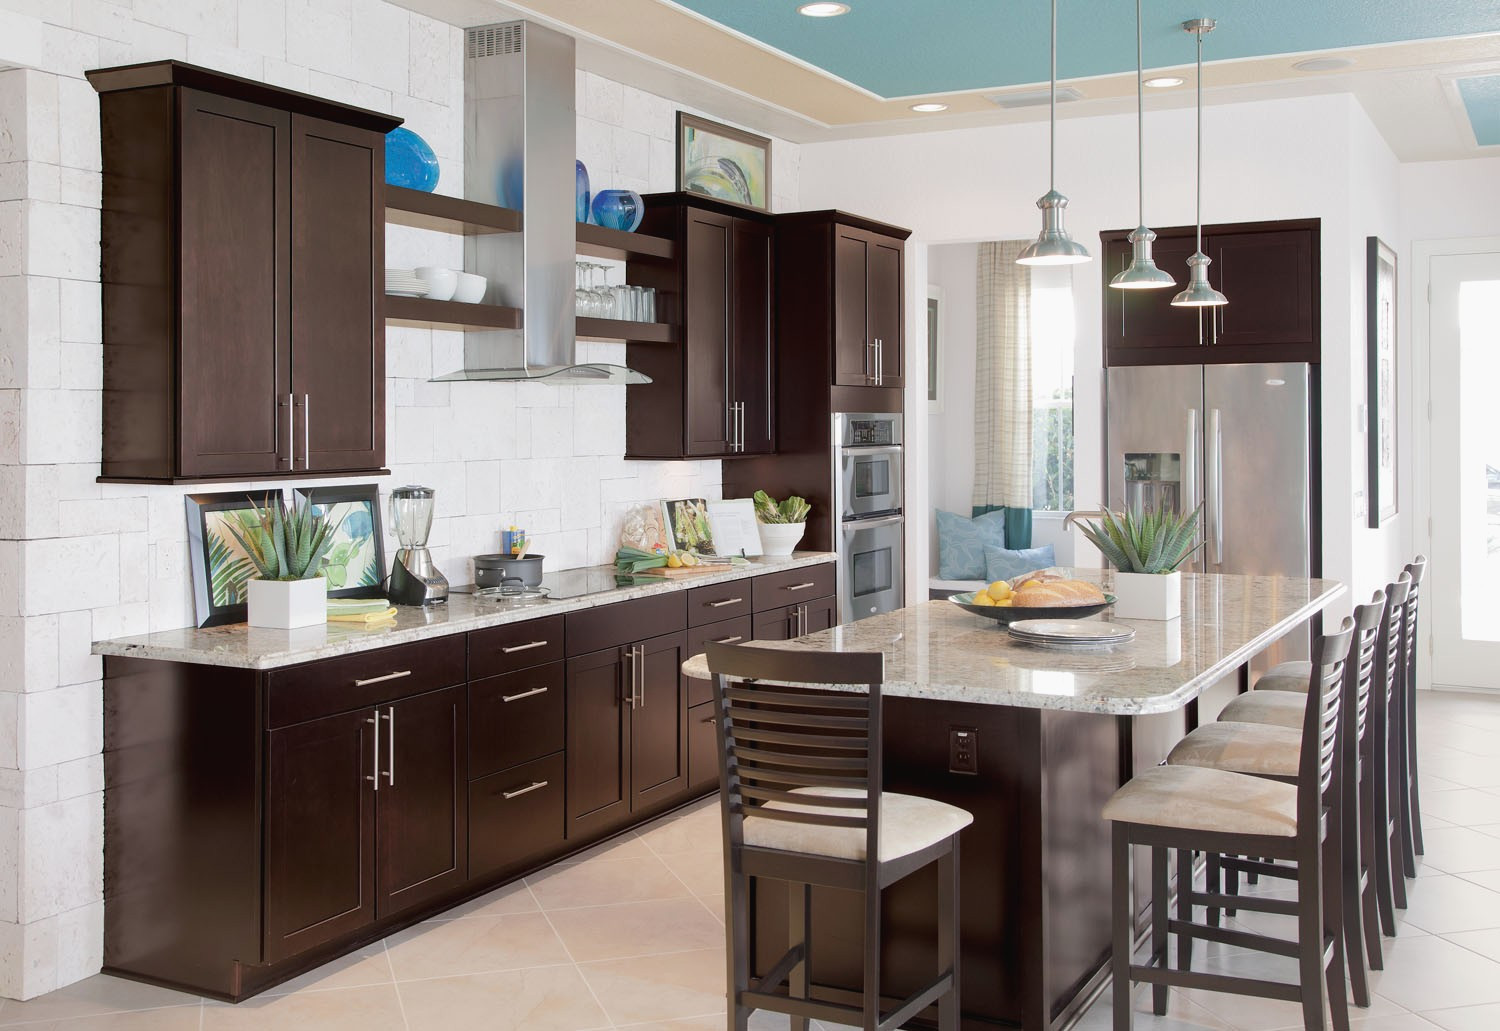 Hardwood Floor Stain Colors Espresso Of Espresso and White Kitchen Cabinets Kitchen Appliances Tips and Review Regarding Floors Espresso Stained Centre island A· Espresso Kitchen Cabinets with Backsplash New Cabinets 78 Great Breathtaking Espresso and White Kitchen Vision